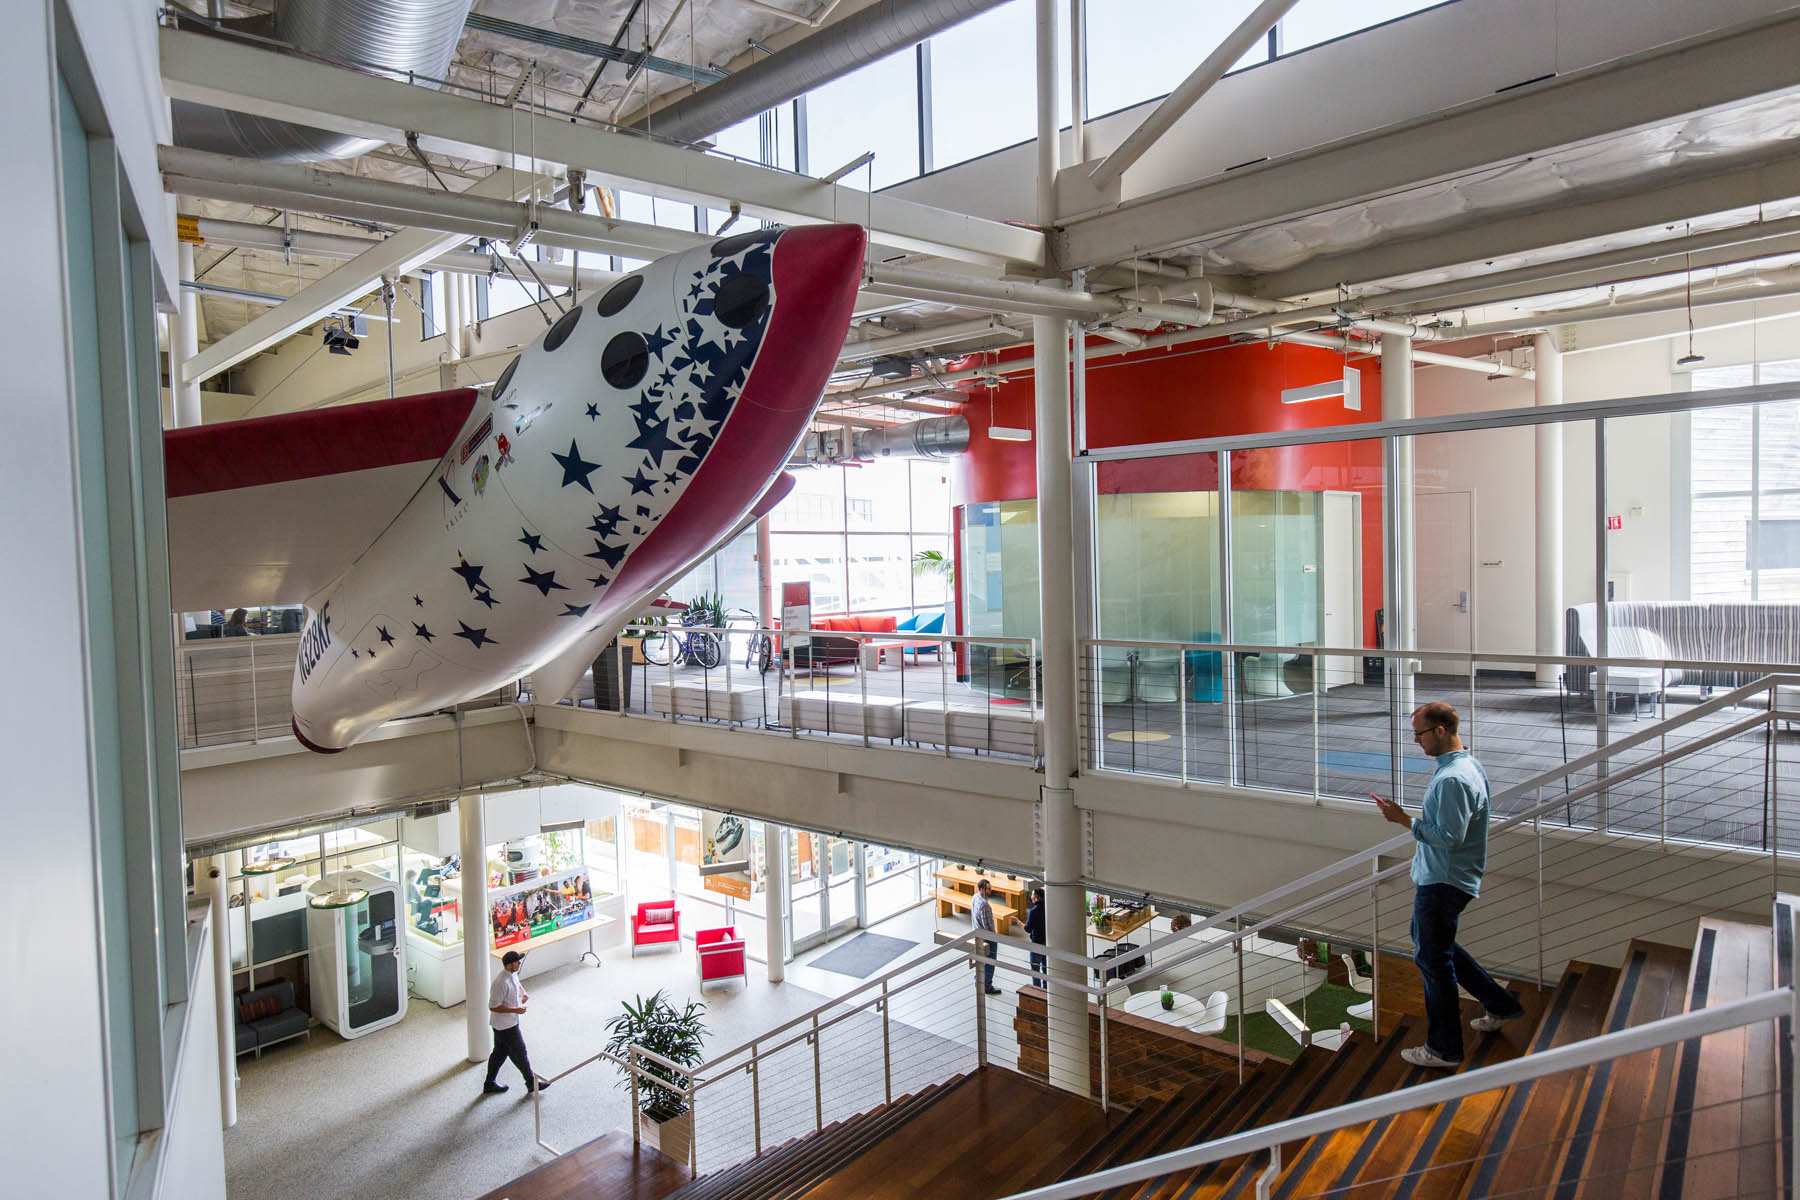 An interior view of office space at the Googleplex,  the corporate headquarters complex of Google, Inc., located in Mountain View, California.